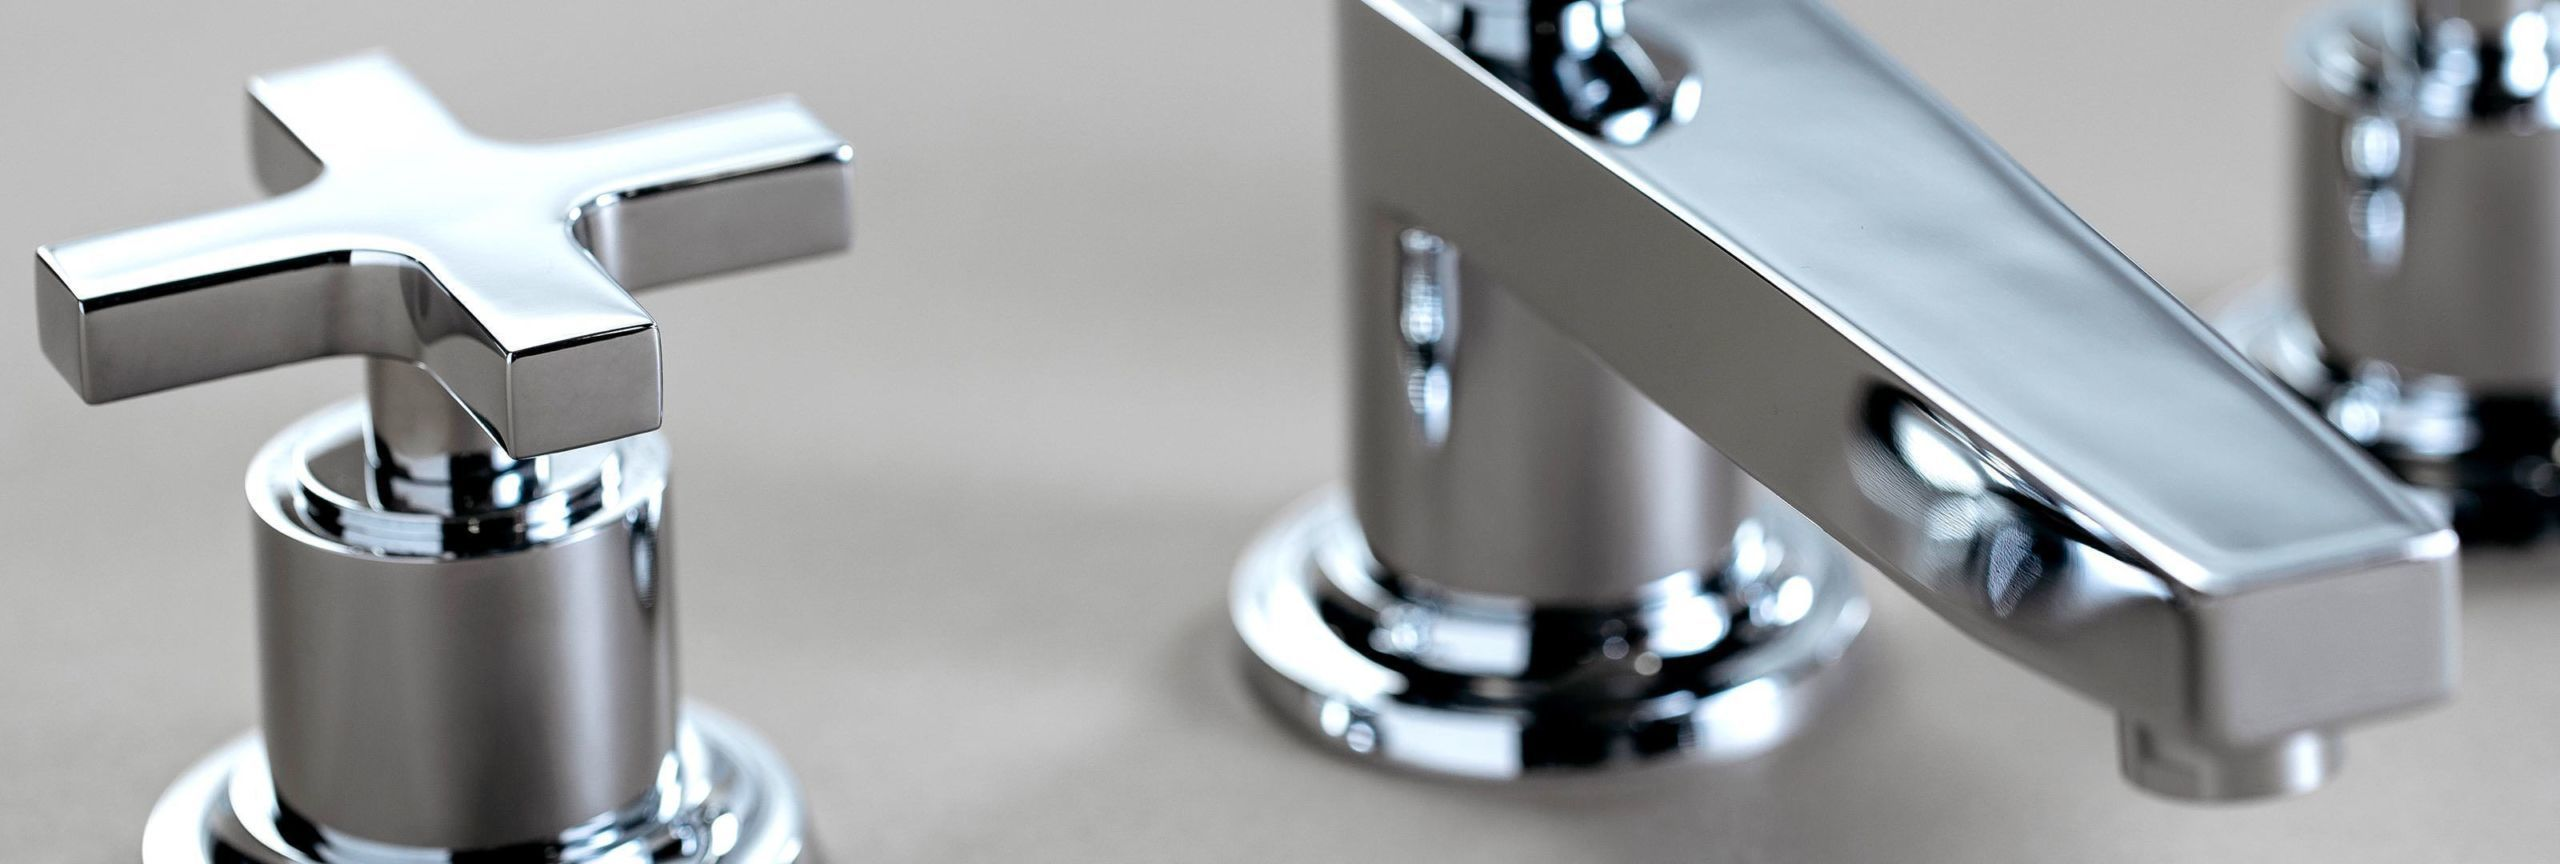 chrome finish close-up on Rincon Bay widespread faucet